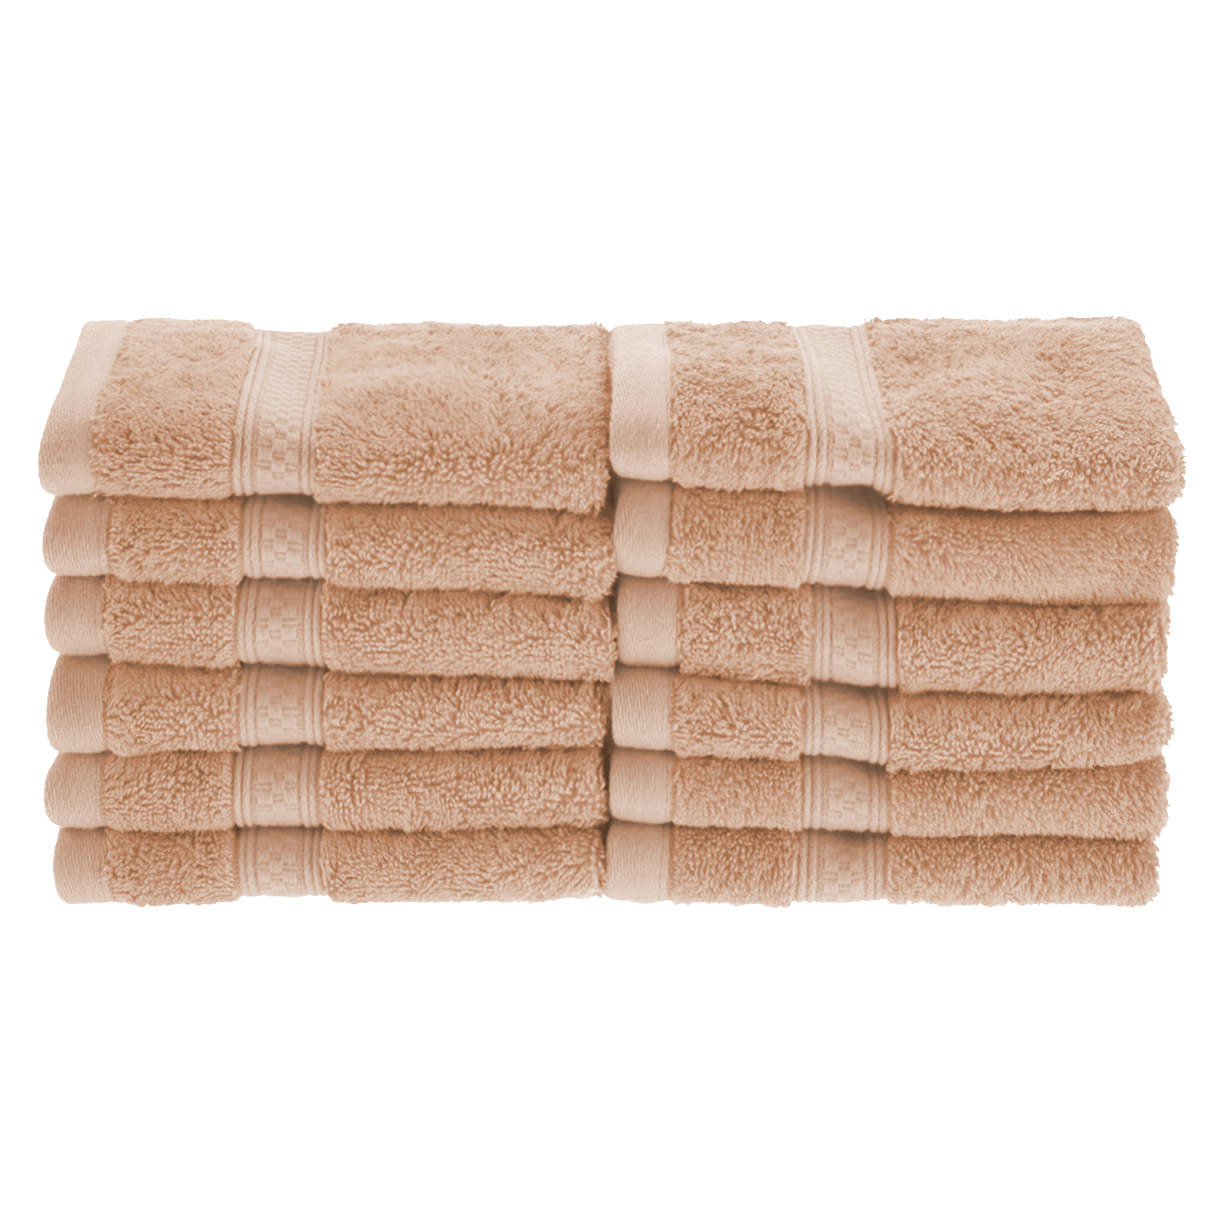 Superior 650GSM Rayon From Bamboo 12-Piece Face Towel Set